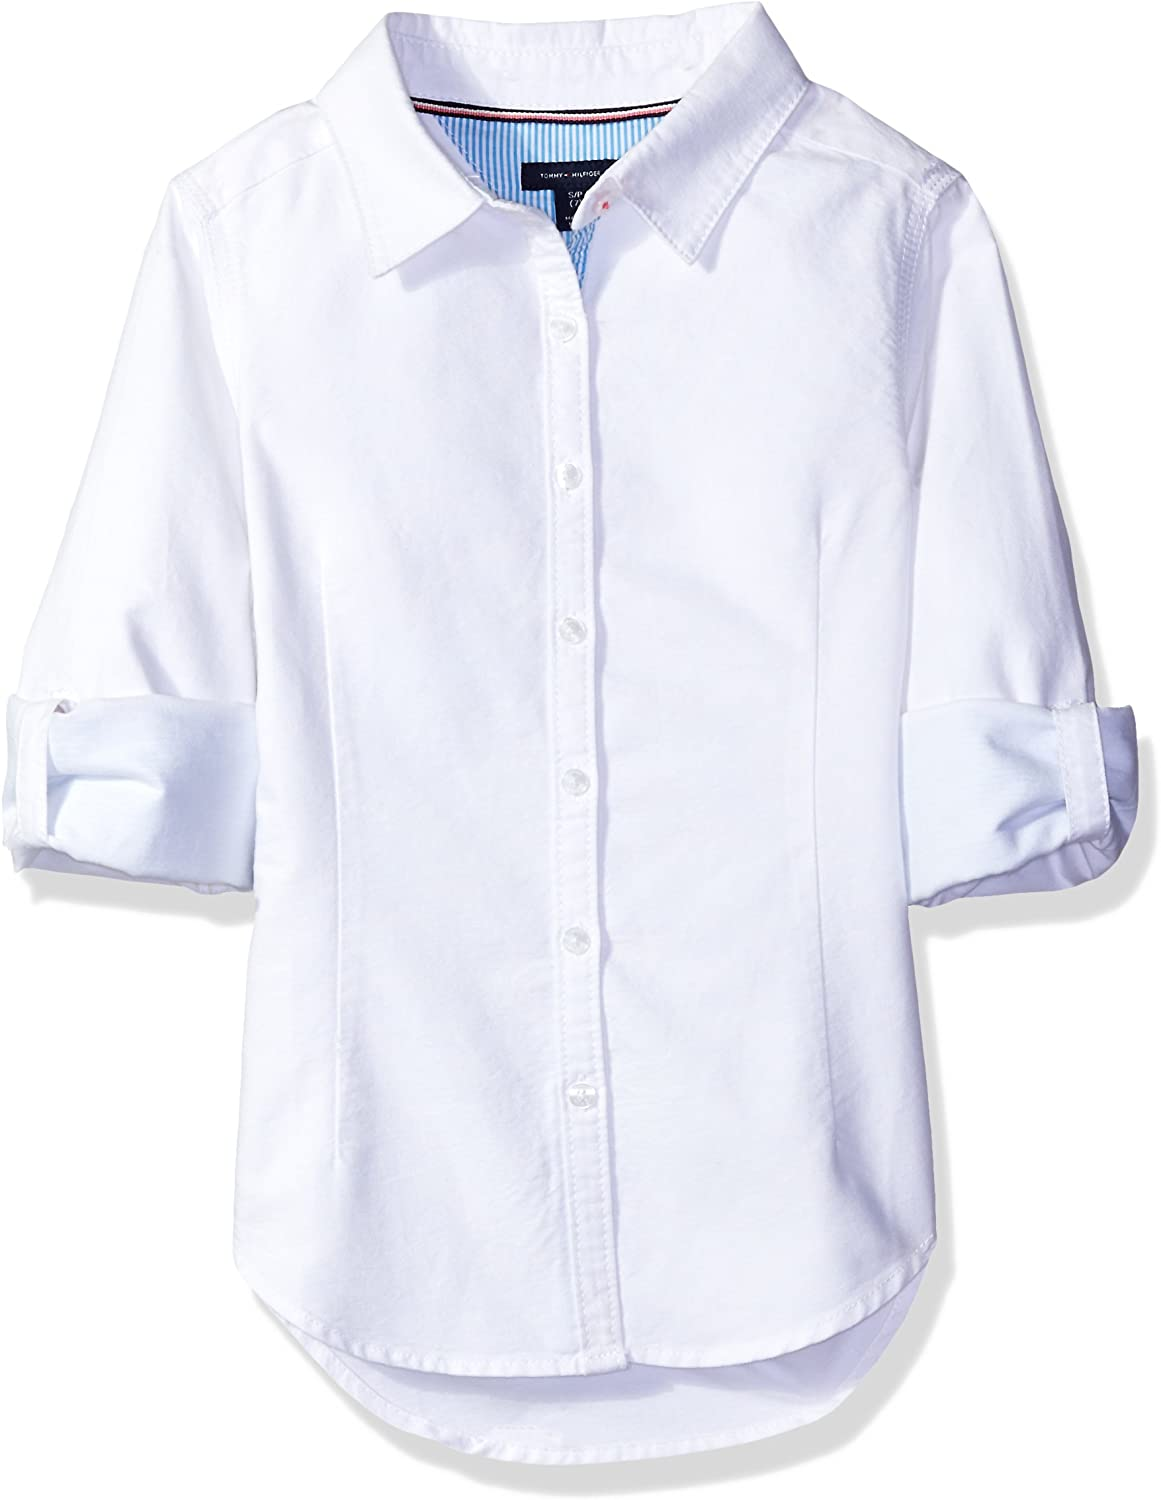 Tommy Hilfiger Girls' Solid Oxford Shirt: Clothing